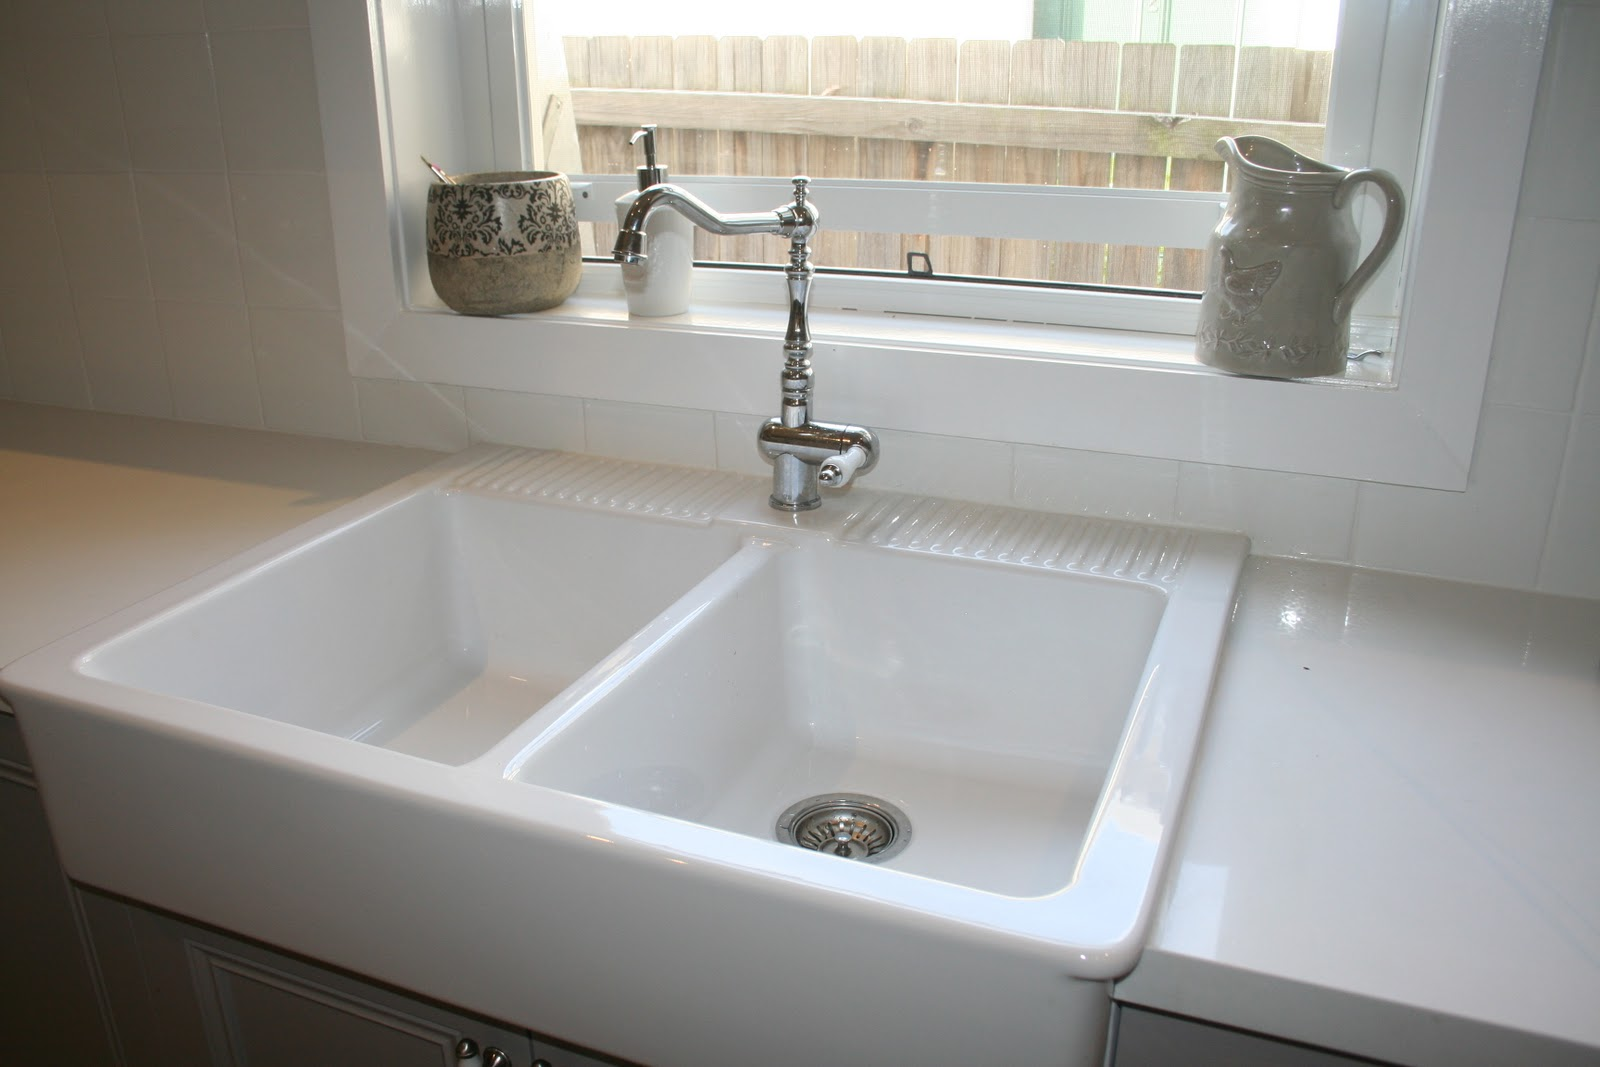 Farm Sink Ikea: Its Special Characteristics and Materials ...